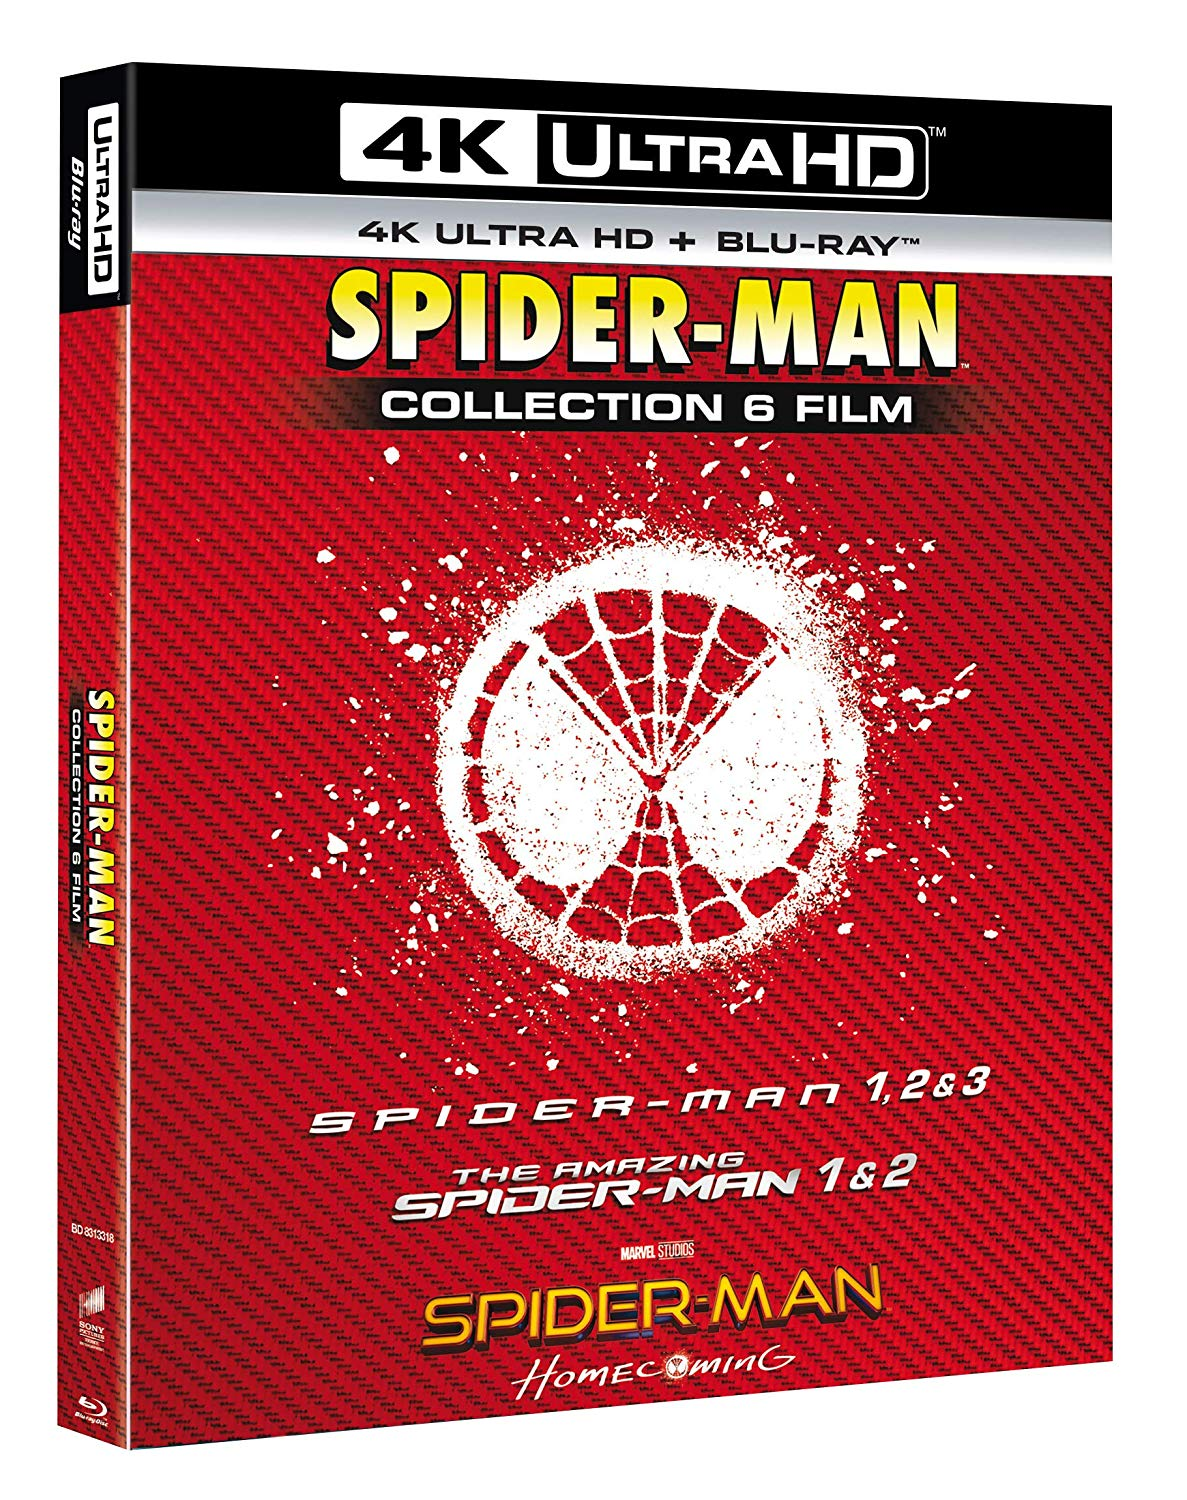 COF.SPIDER-MAN 4K COLLECTION (6 BLU-RAY 4K ULTRA HD+6 BLU-RAY) (